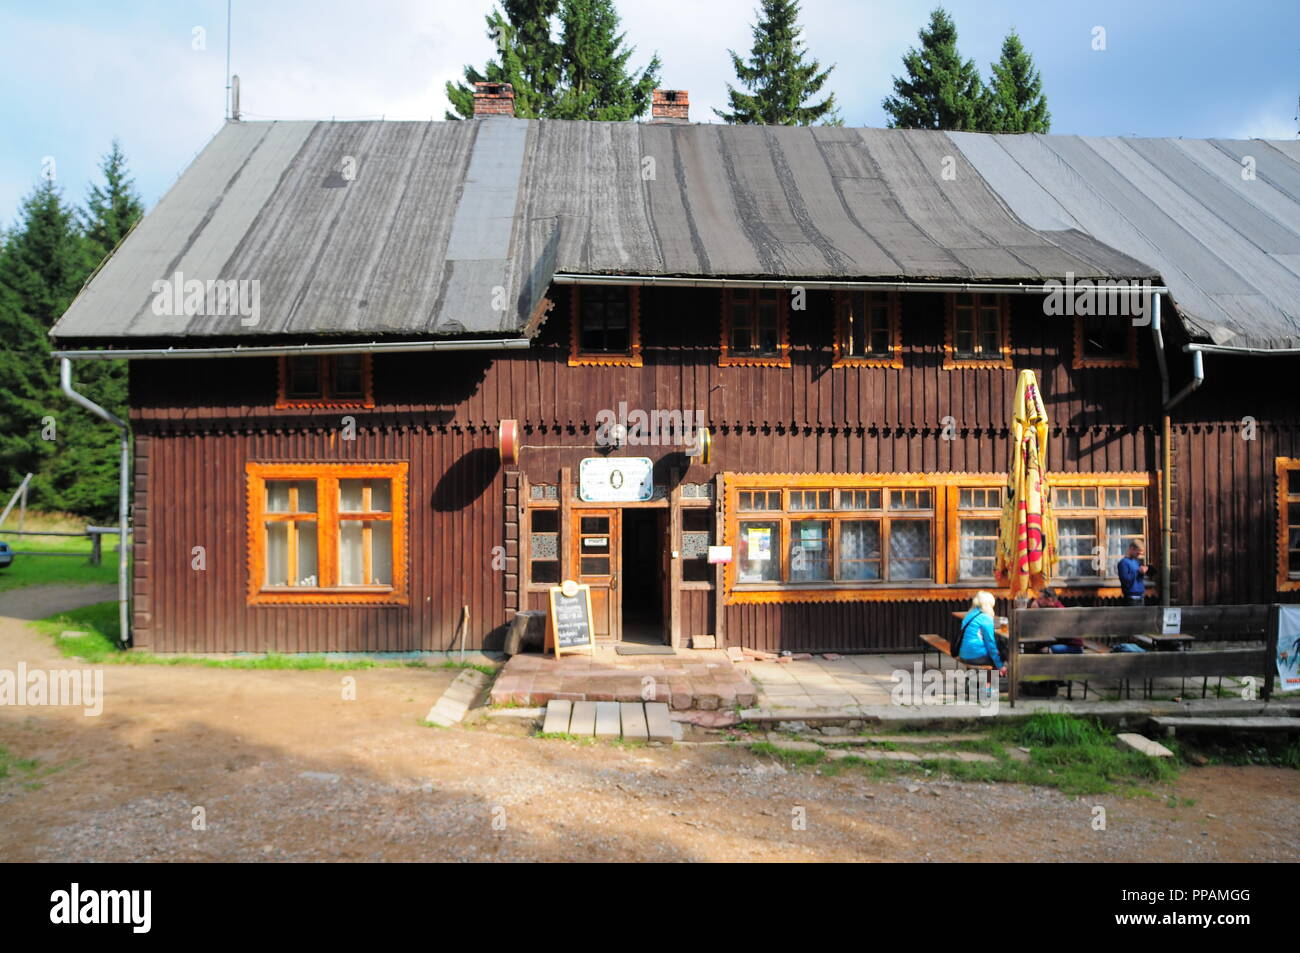 """Mountain shelter """"Sowa"""" in Góry Sowie (Owl Mountains)(Eulengebirge) Poland 2018 Stock Photo"""